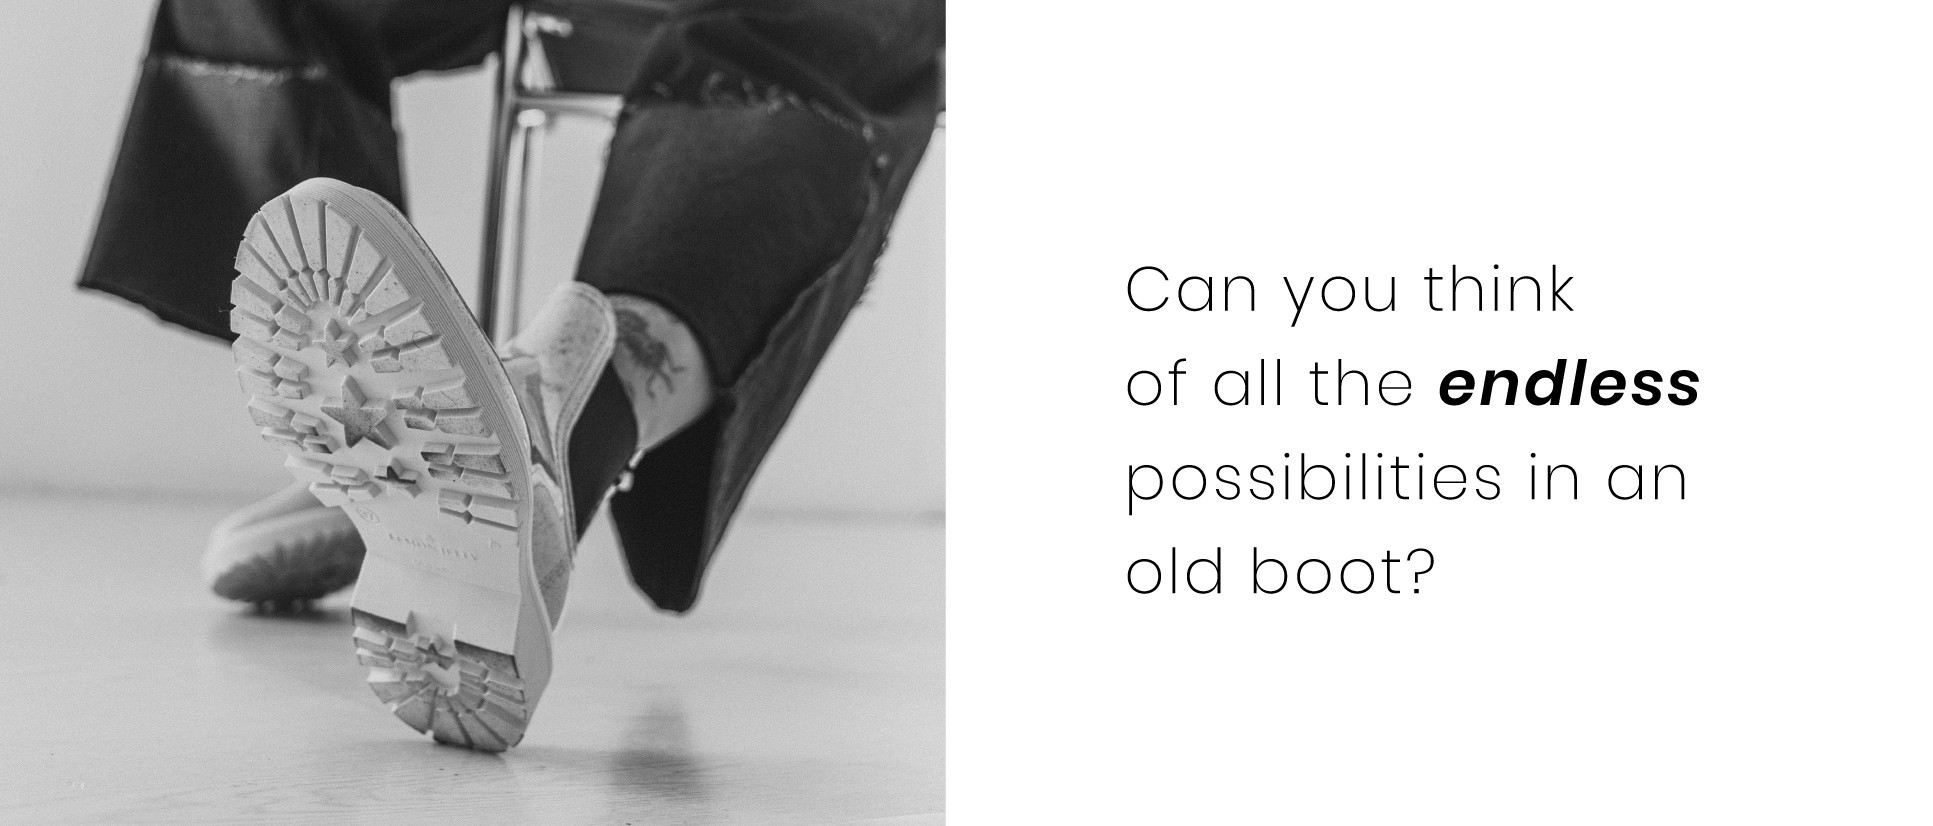 Think of all the possibilities of an old boot